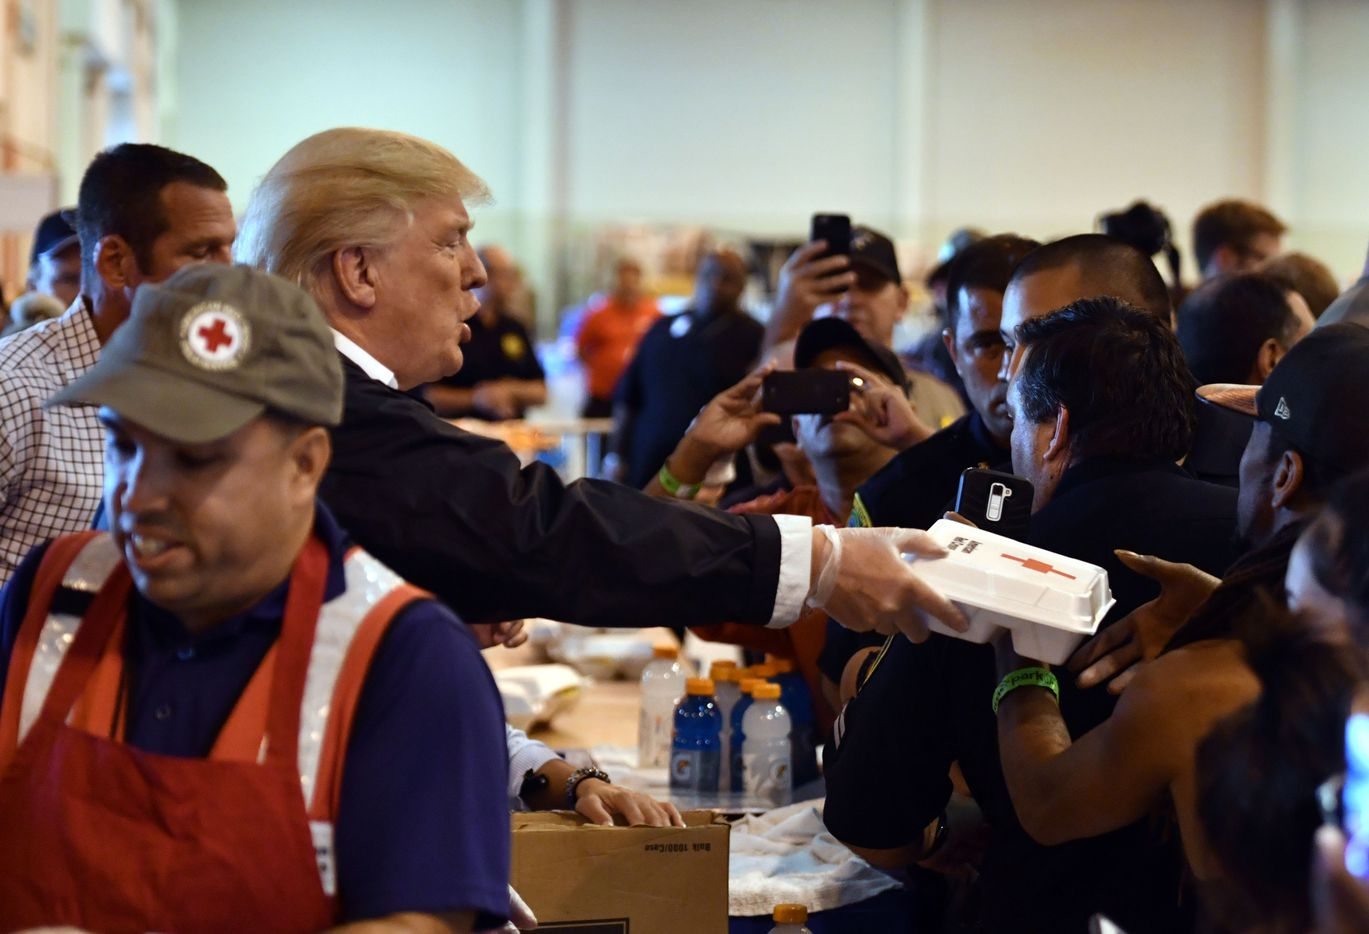 President Donald Trump serves food to Hurricane Harvey victims at NRG Center in Houston on Saturday.